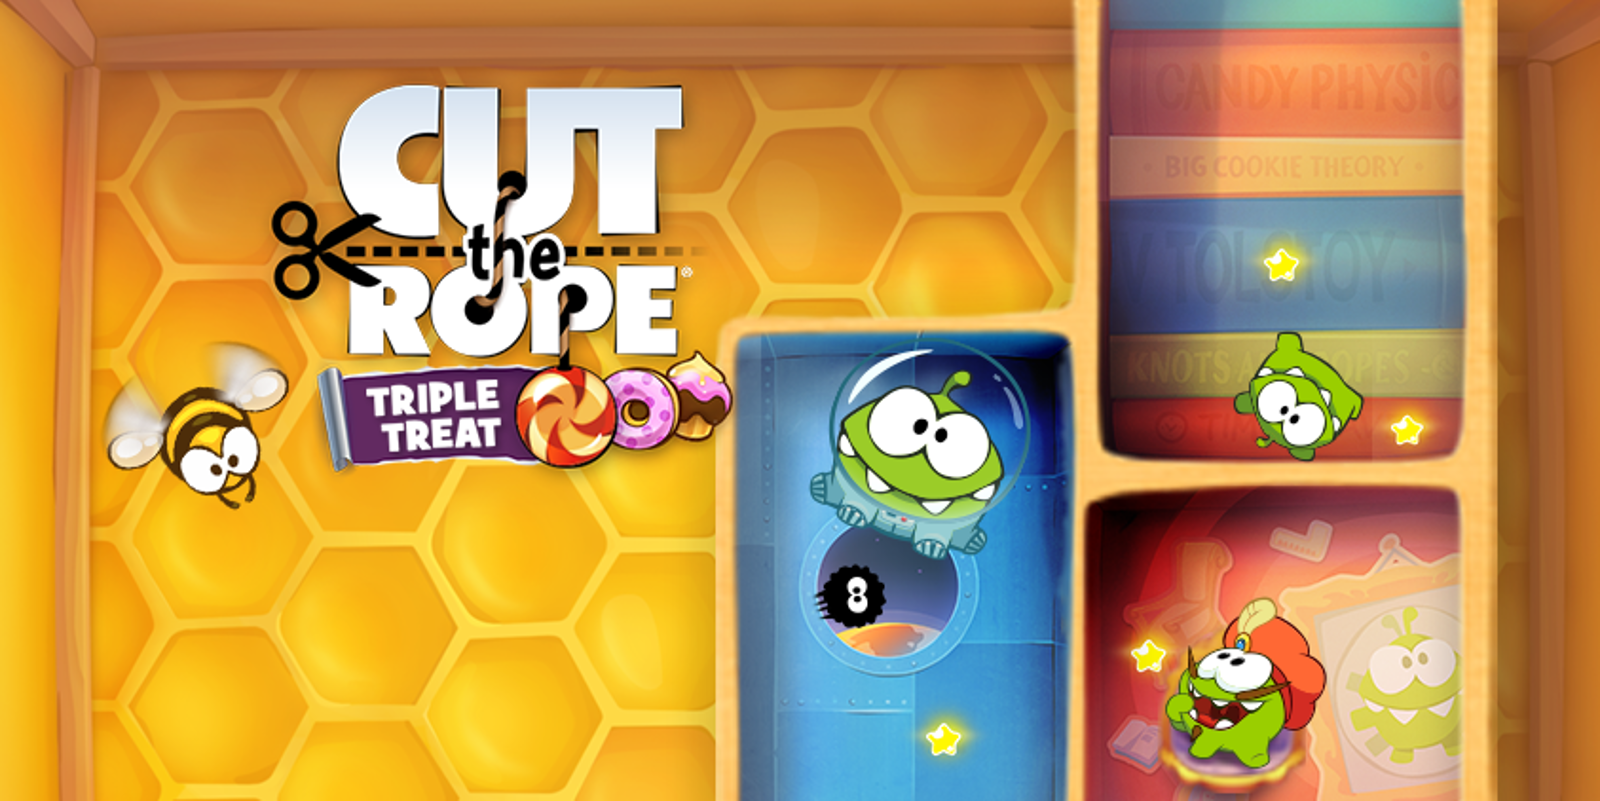 Cut The Rope 174 Triple Treat Nintendo 3ds Games Nintendo